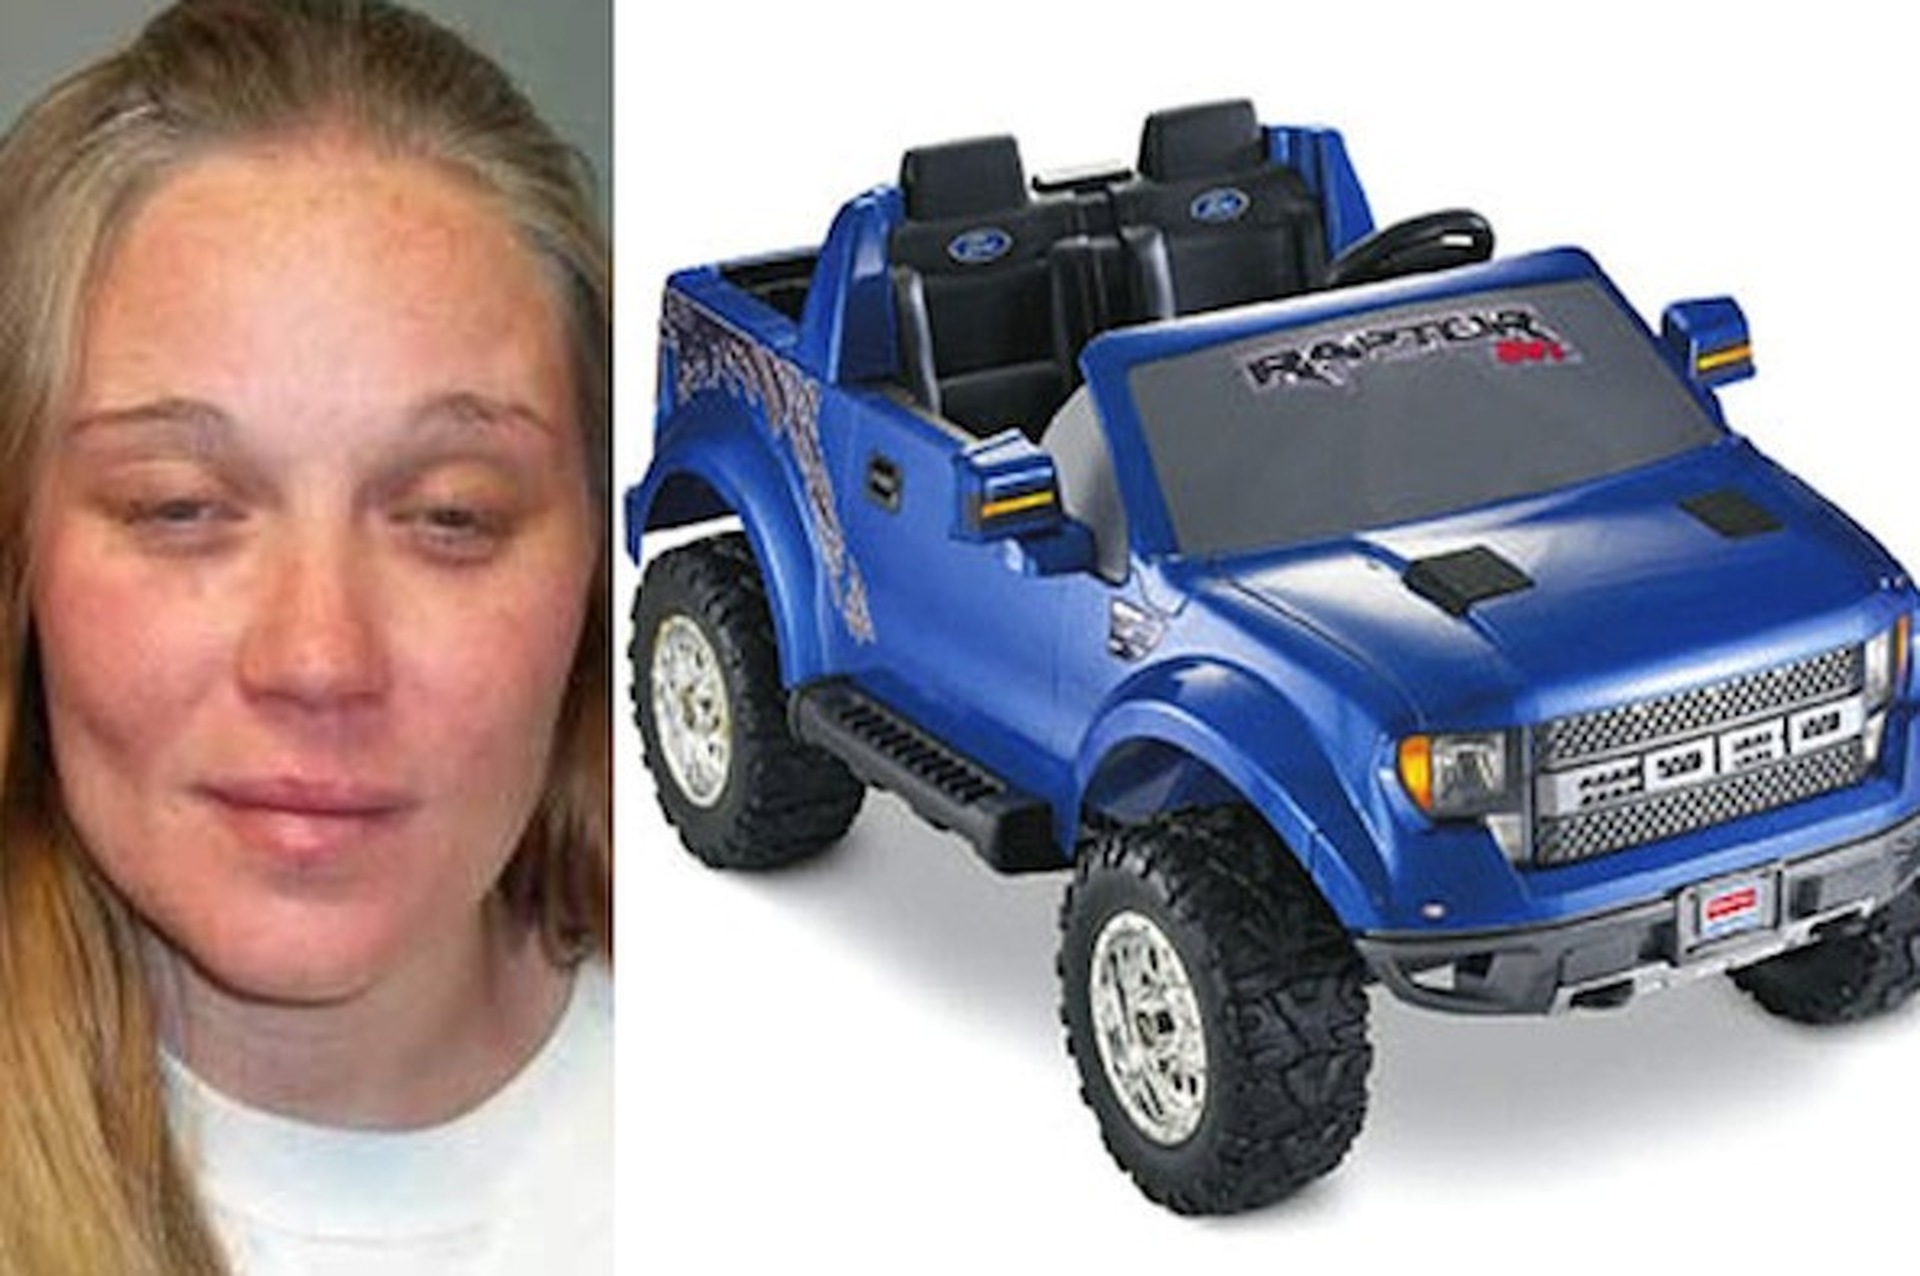 Pantless Drunk Woman Tried to Flee From Cops in a Power Wheels